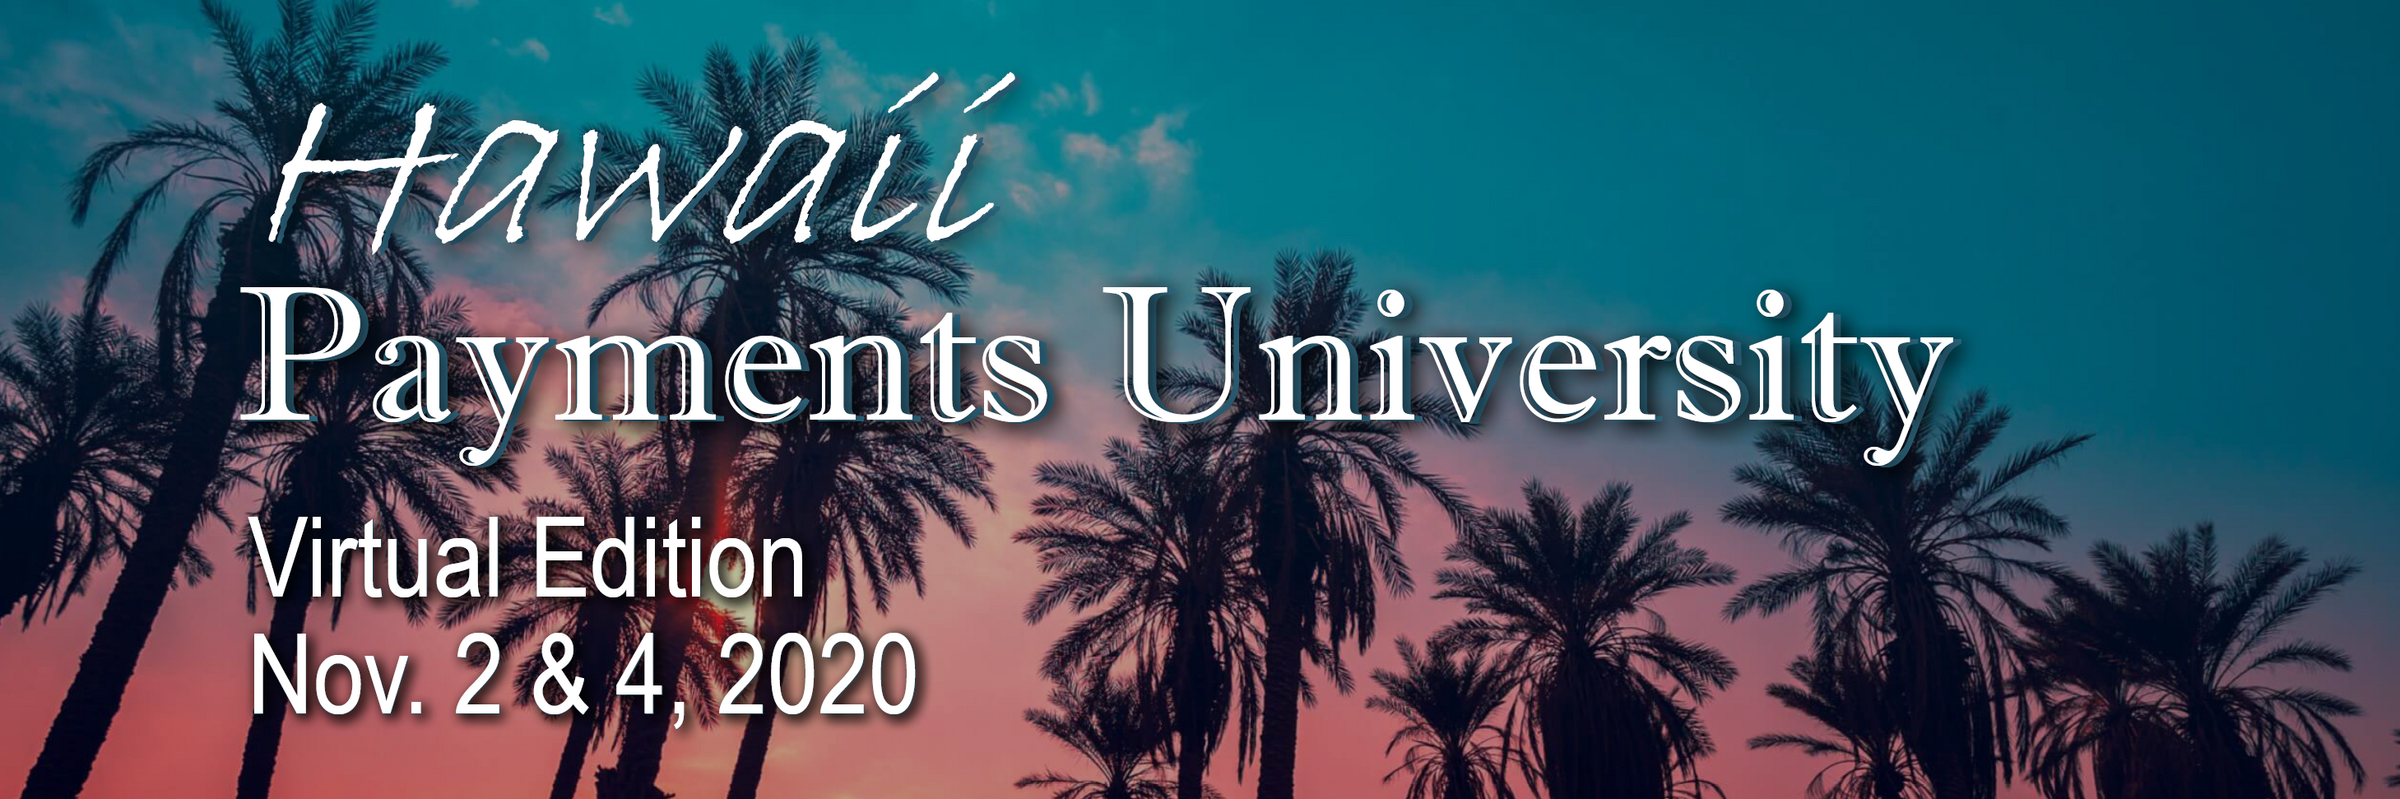 2020 Hawaii Payments University Banner PacPay site